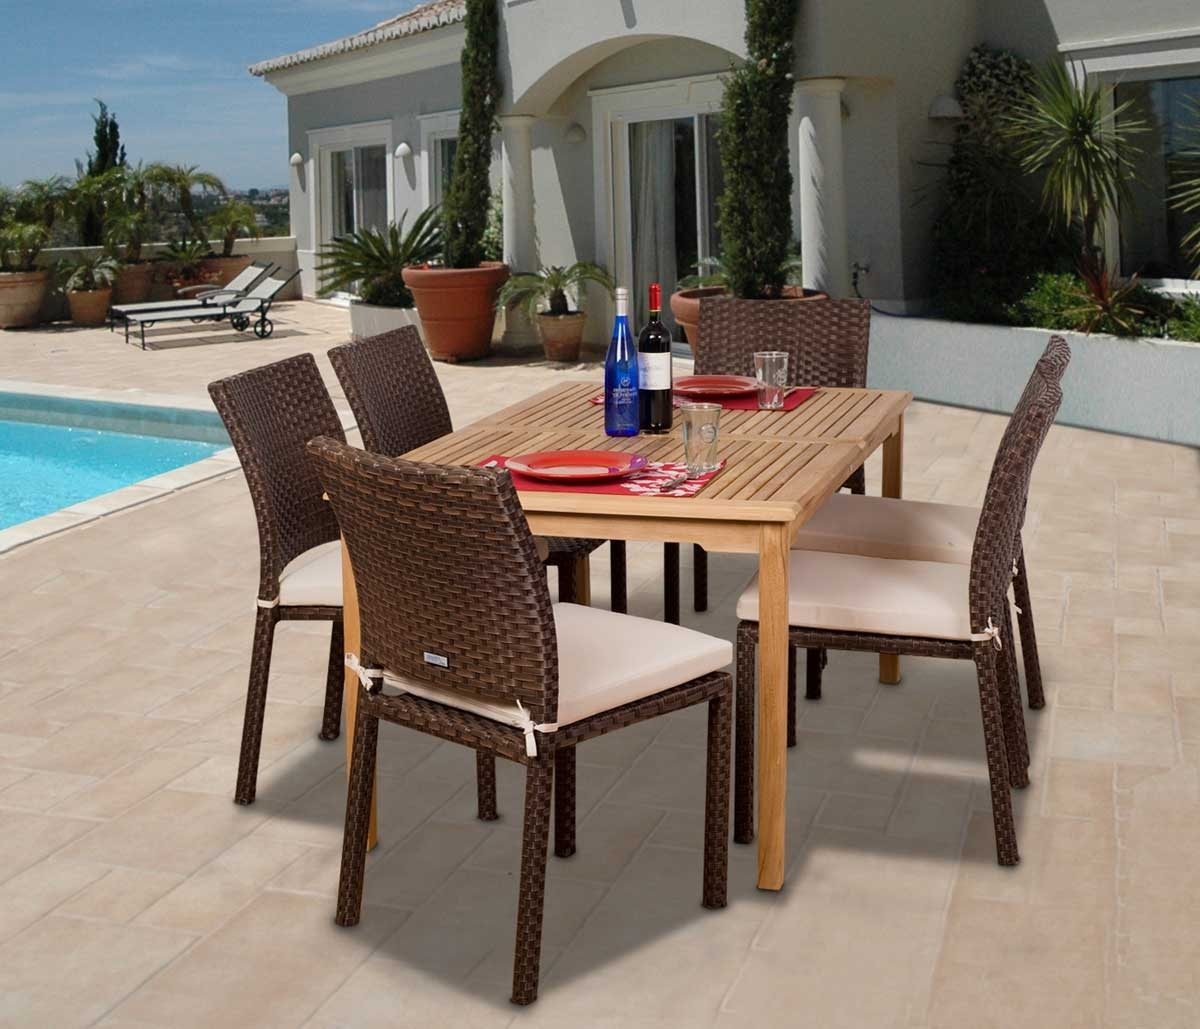 Image of: Affordable Outdoor Furniture 10 Best Dining Sets Under 1500 In Modern Teak Outdoor Furniture How To Care Modern Teak Outdoor Furniture